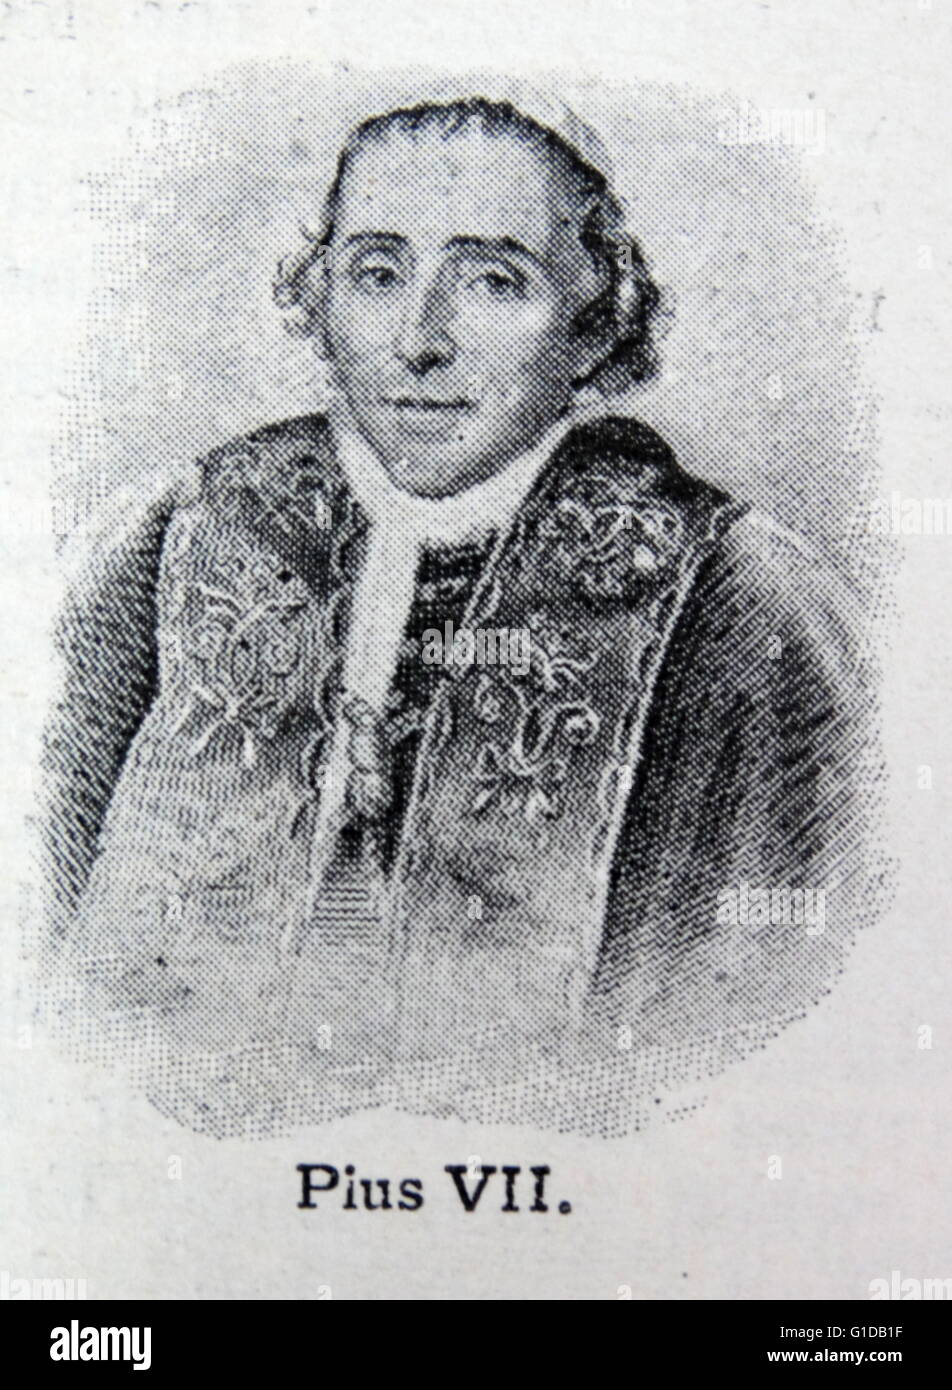 Pius VII. A nineteenth century pope (1800-1823). He was granted the posthumous title of Servant of God. Stock Photo